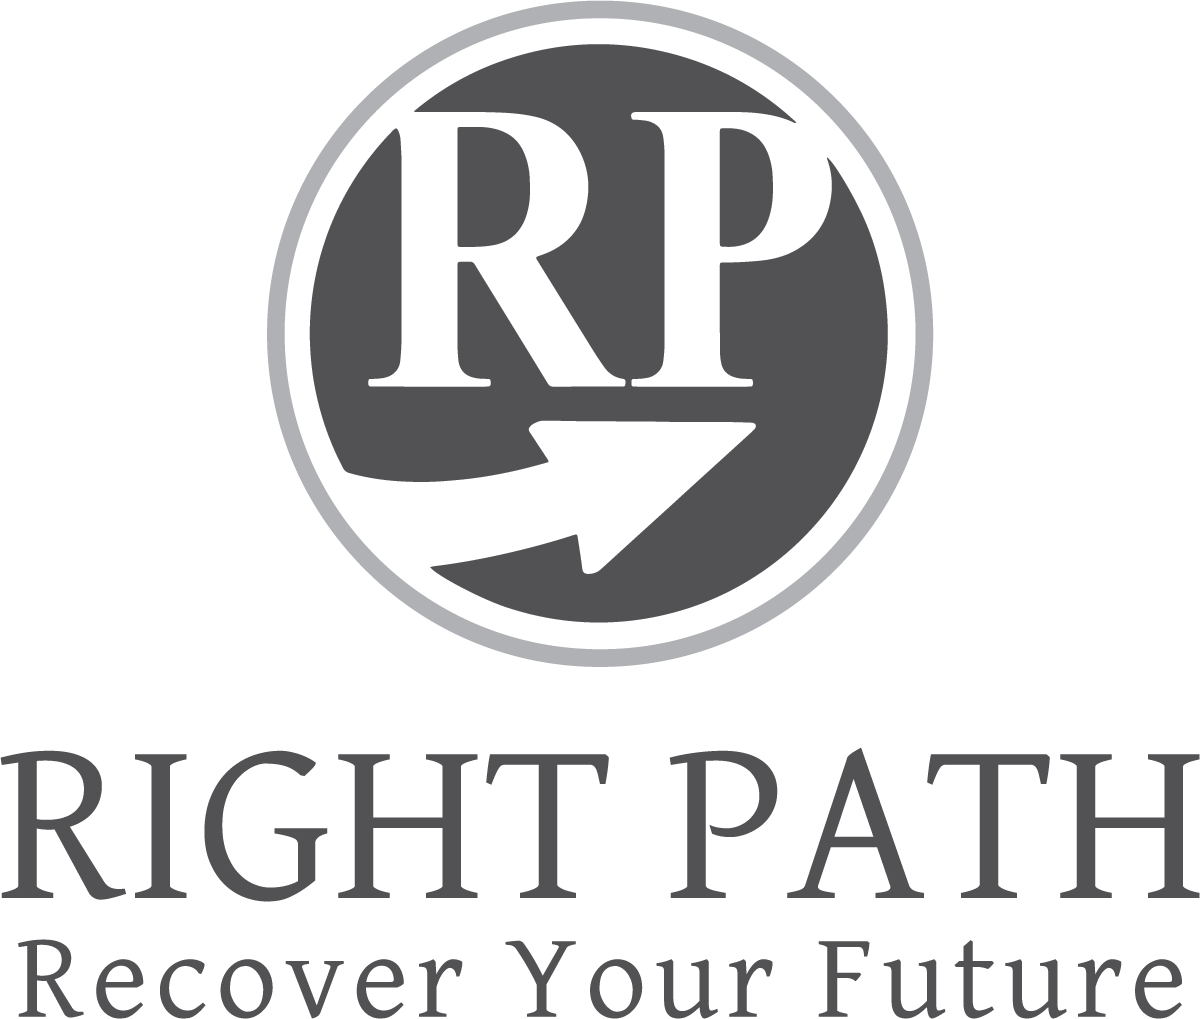 Right Path Addiction Treatment Centers